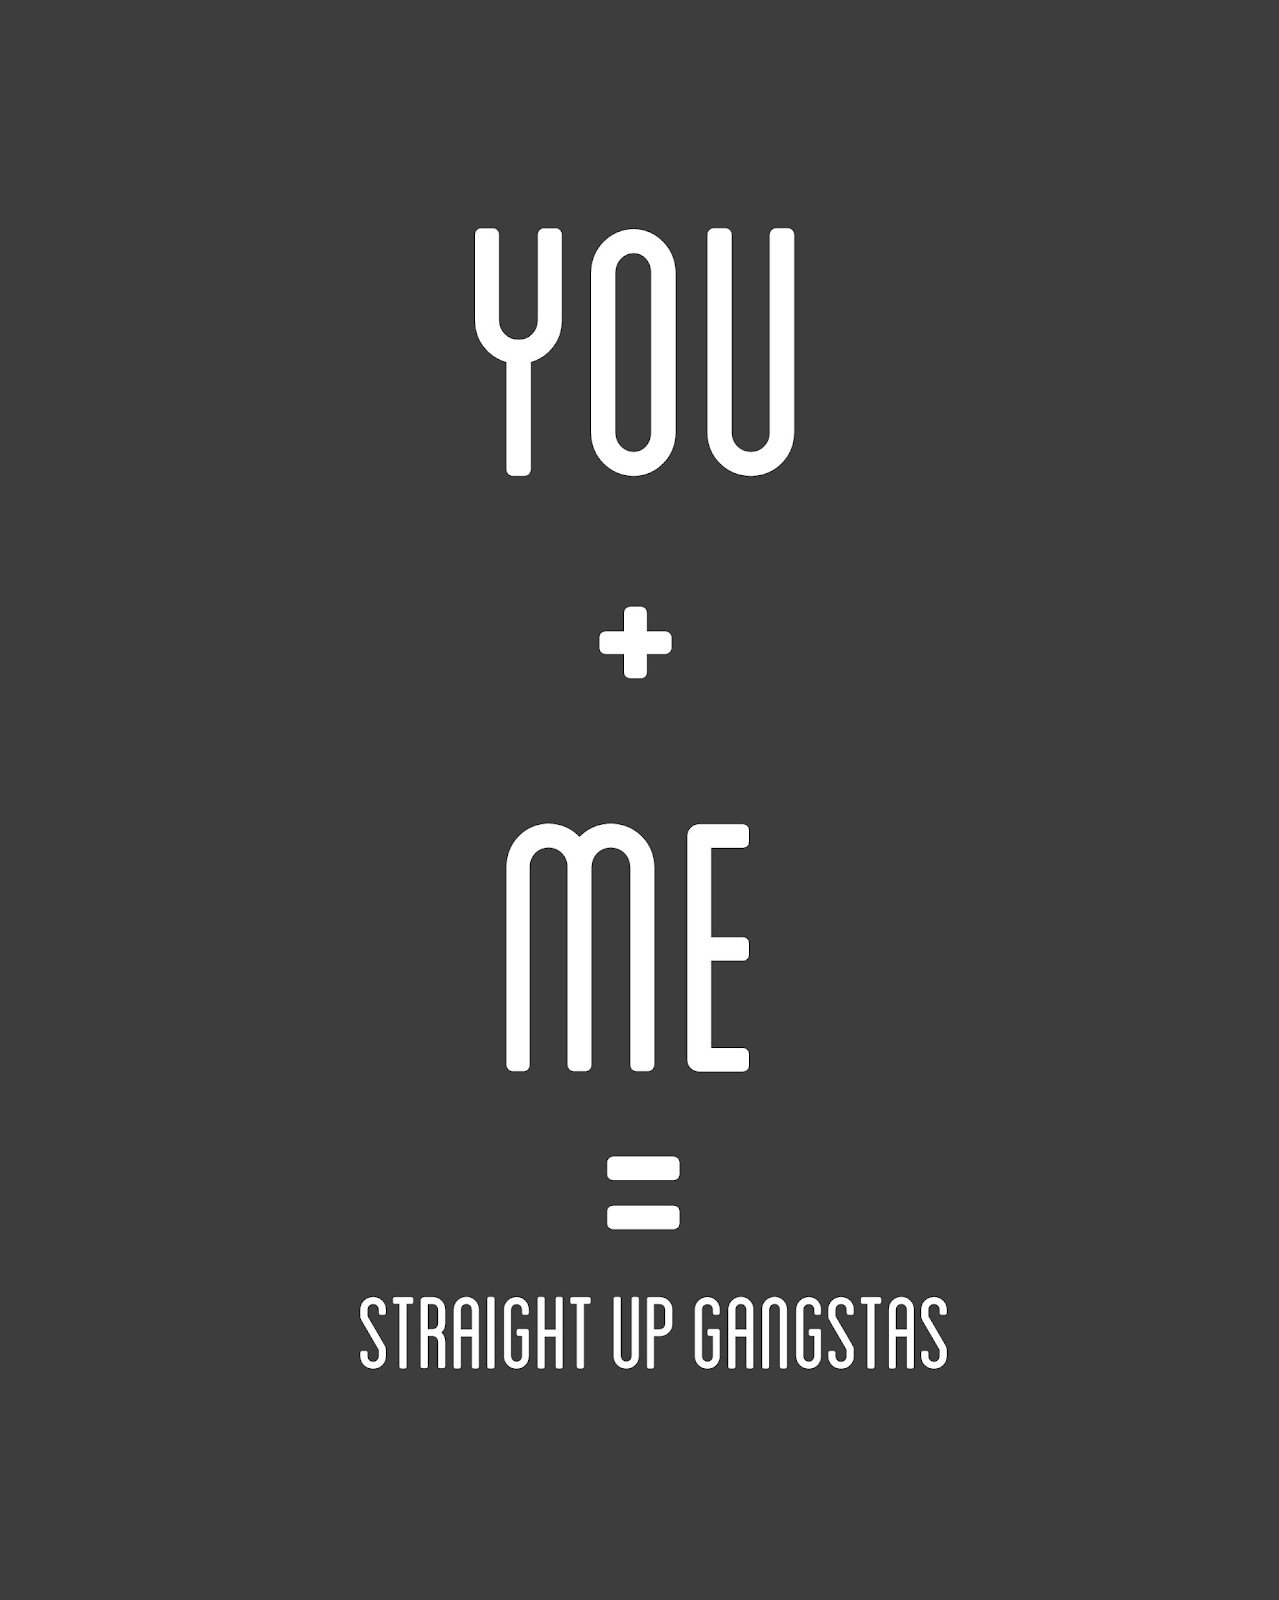 A22 gangster quotes. you + me = straight up gangstas.